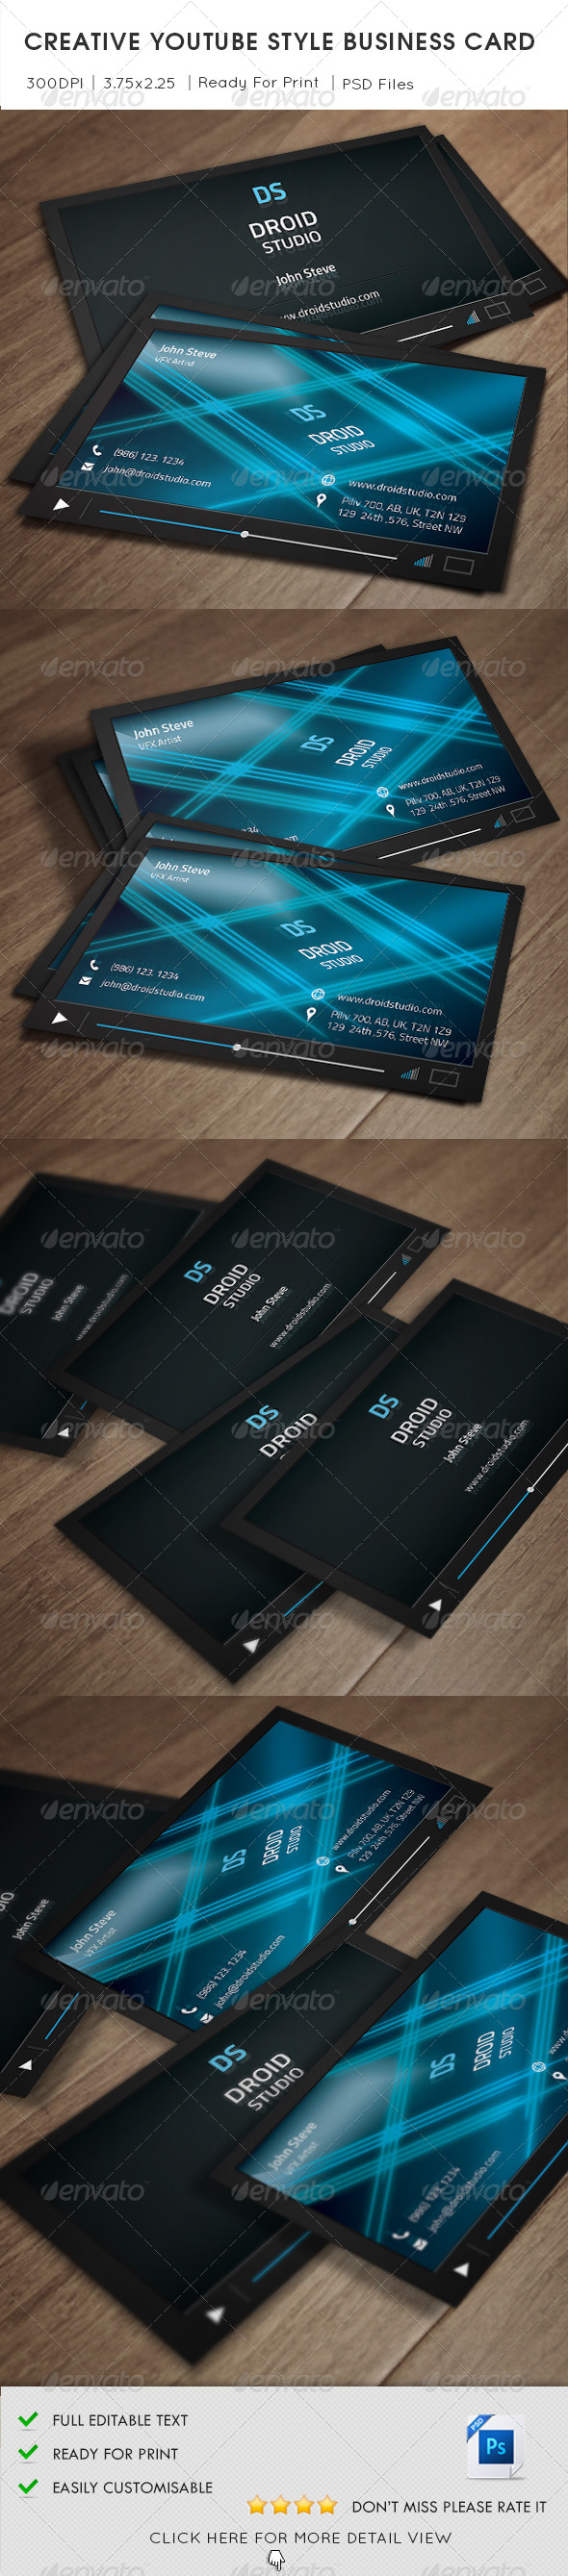 Creative Youtube Style Business Card